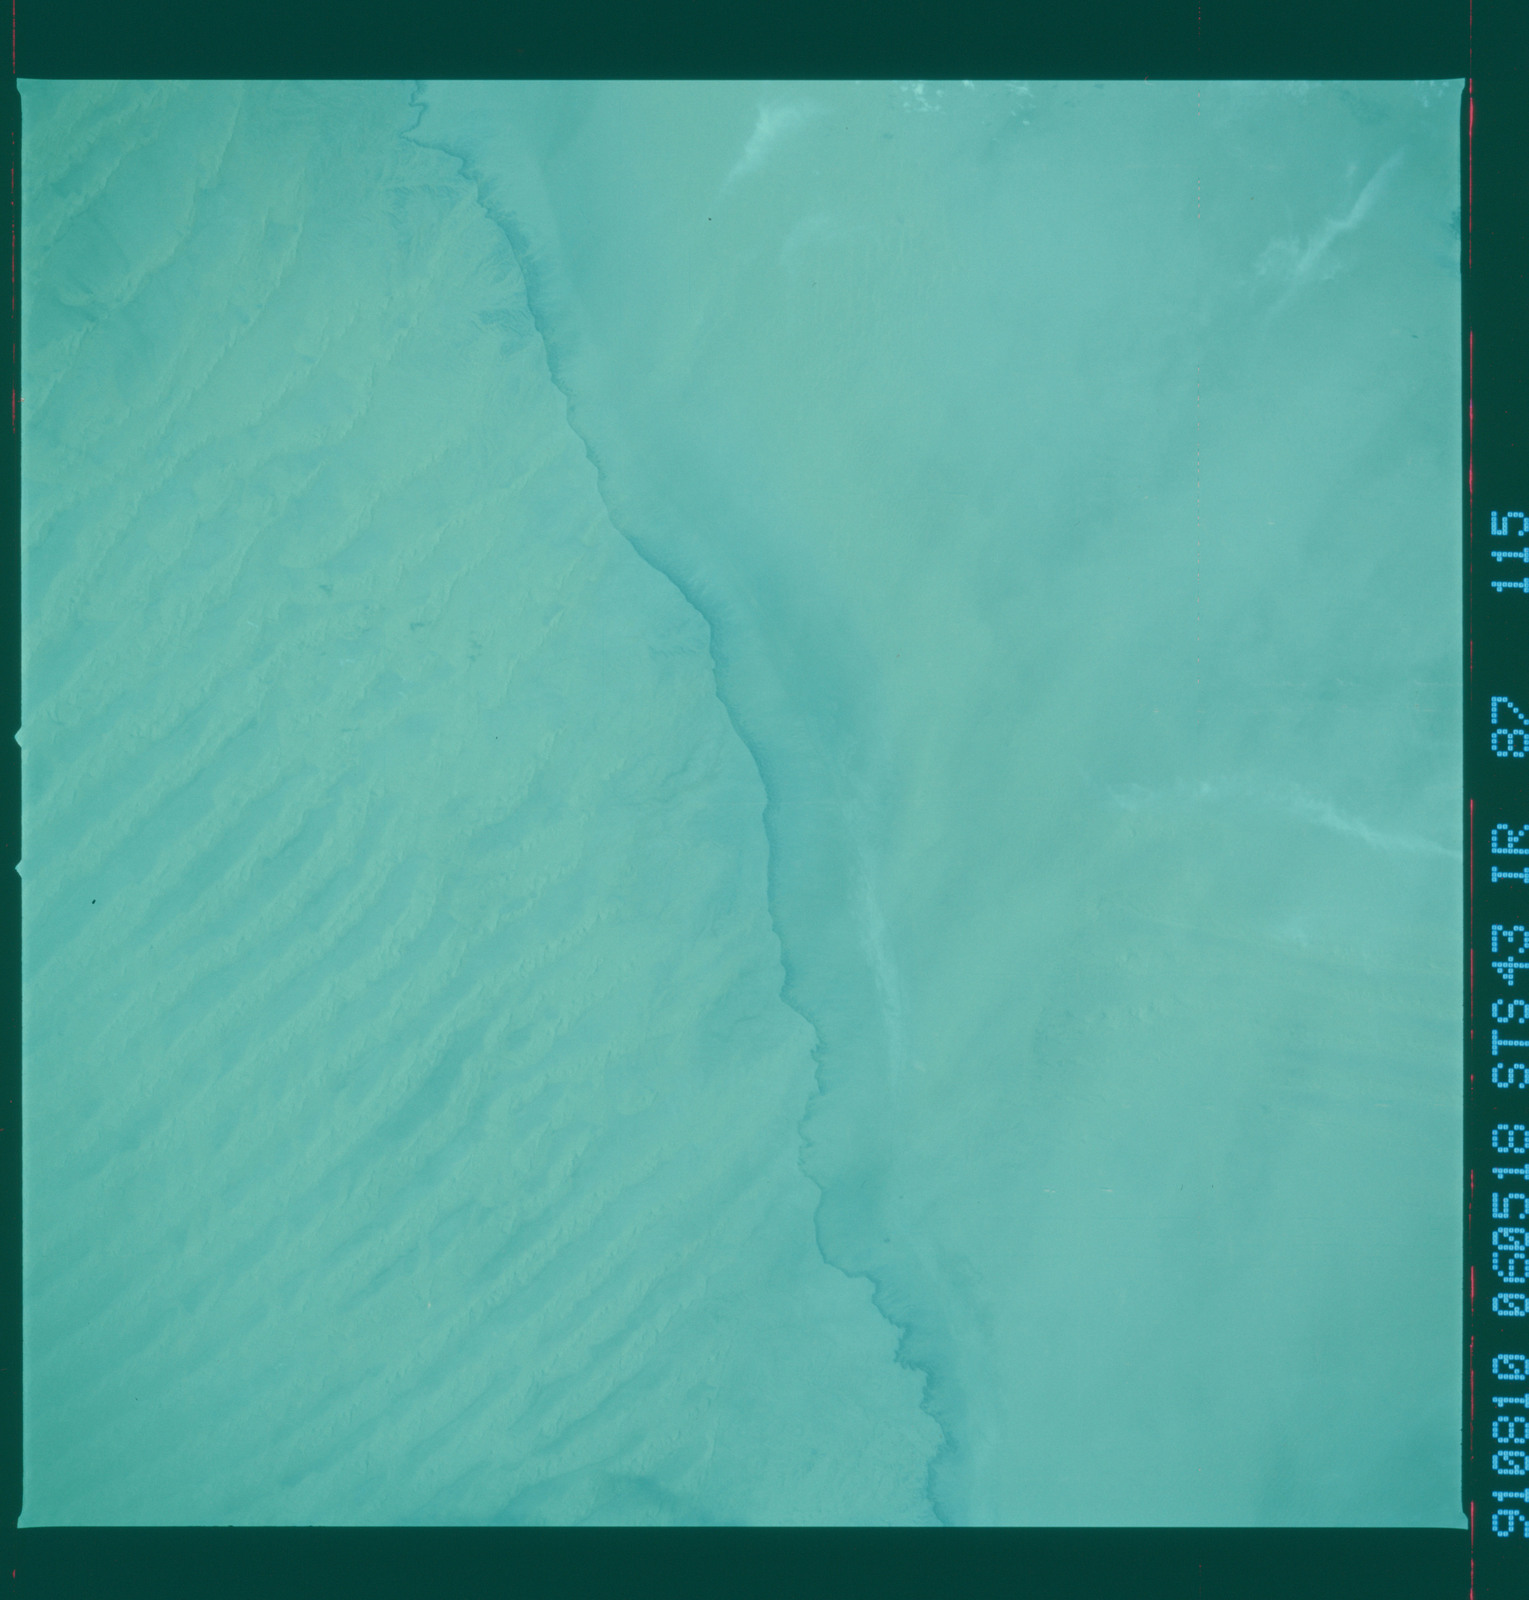 S43-87-115 - STS-043 - STS-43 earth observations